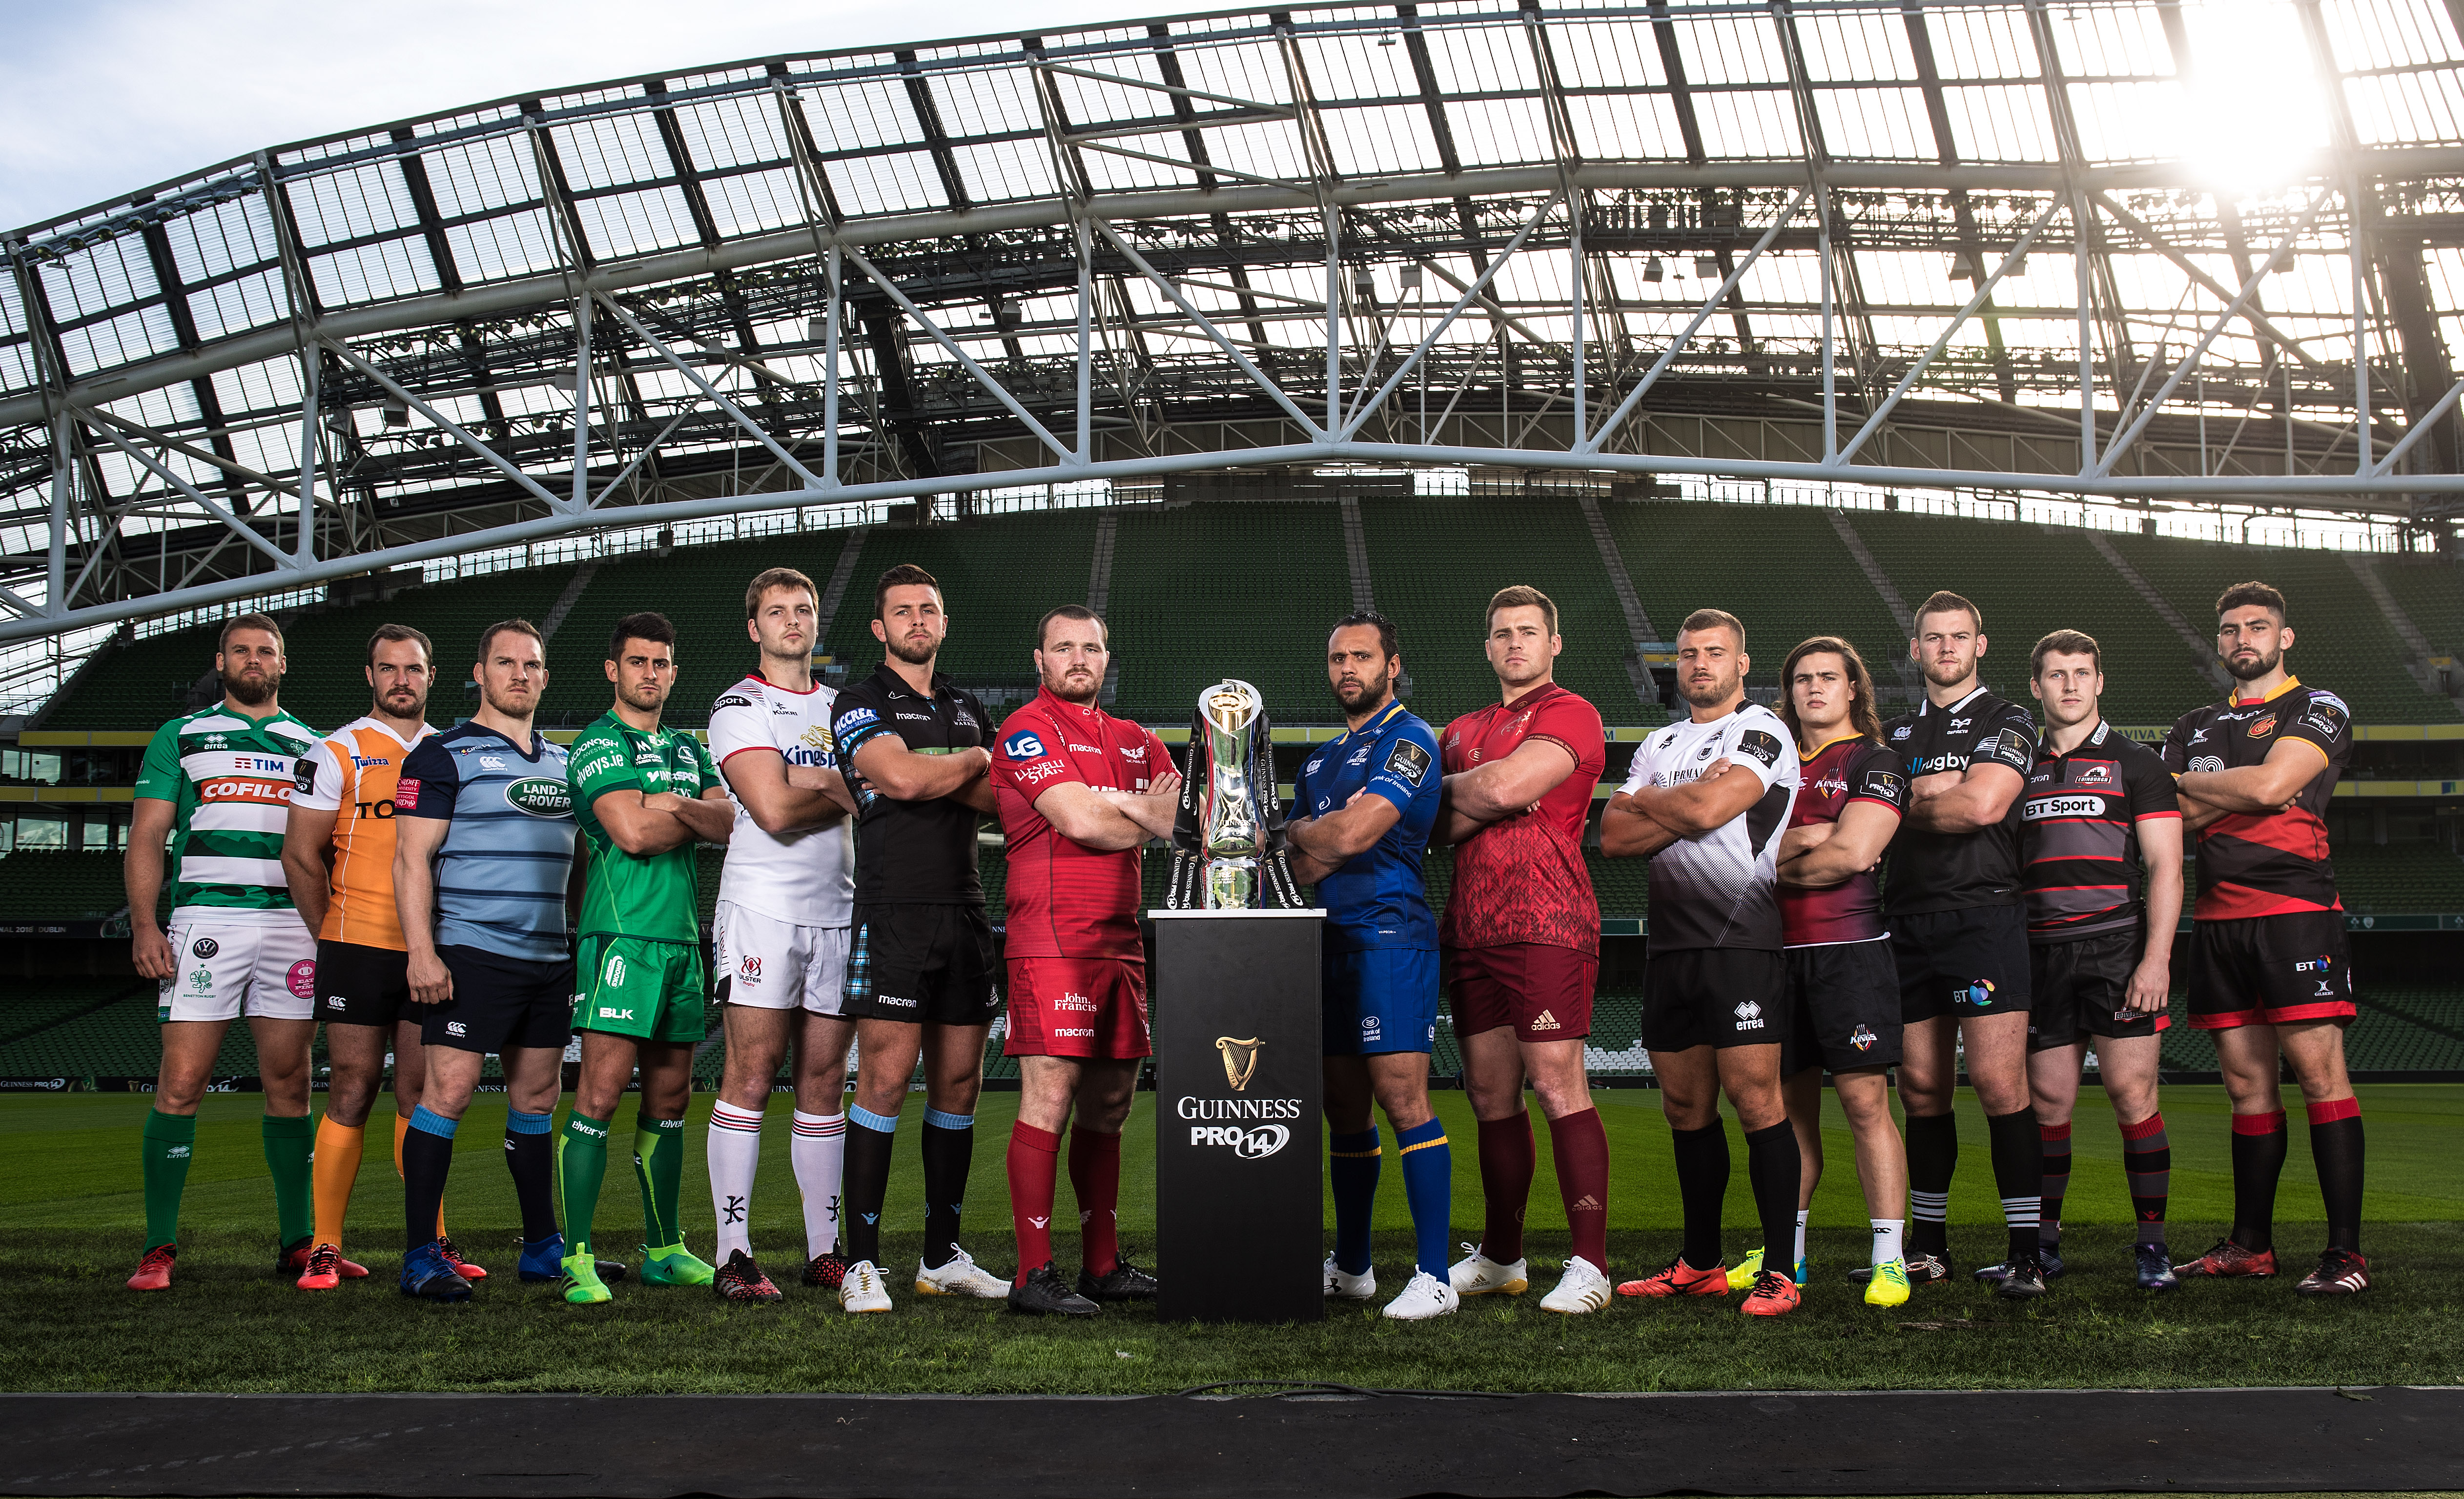 All 14 teams poised and ready to go for this weekend's opening round of the Guinness PRO12. CJ Stander represented Munster.